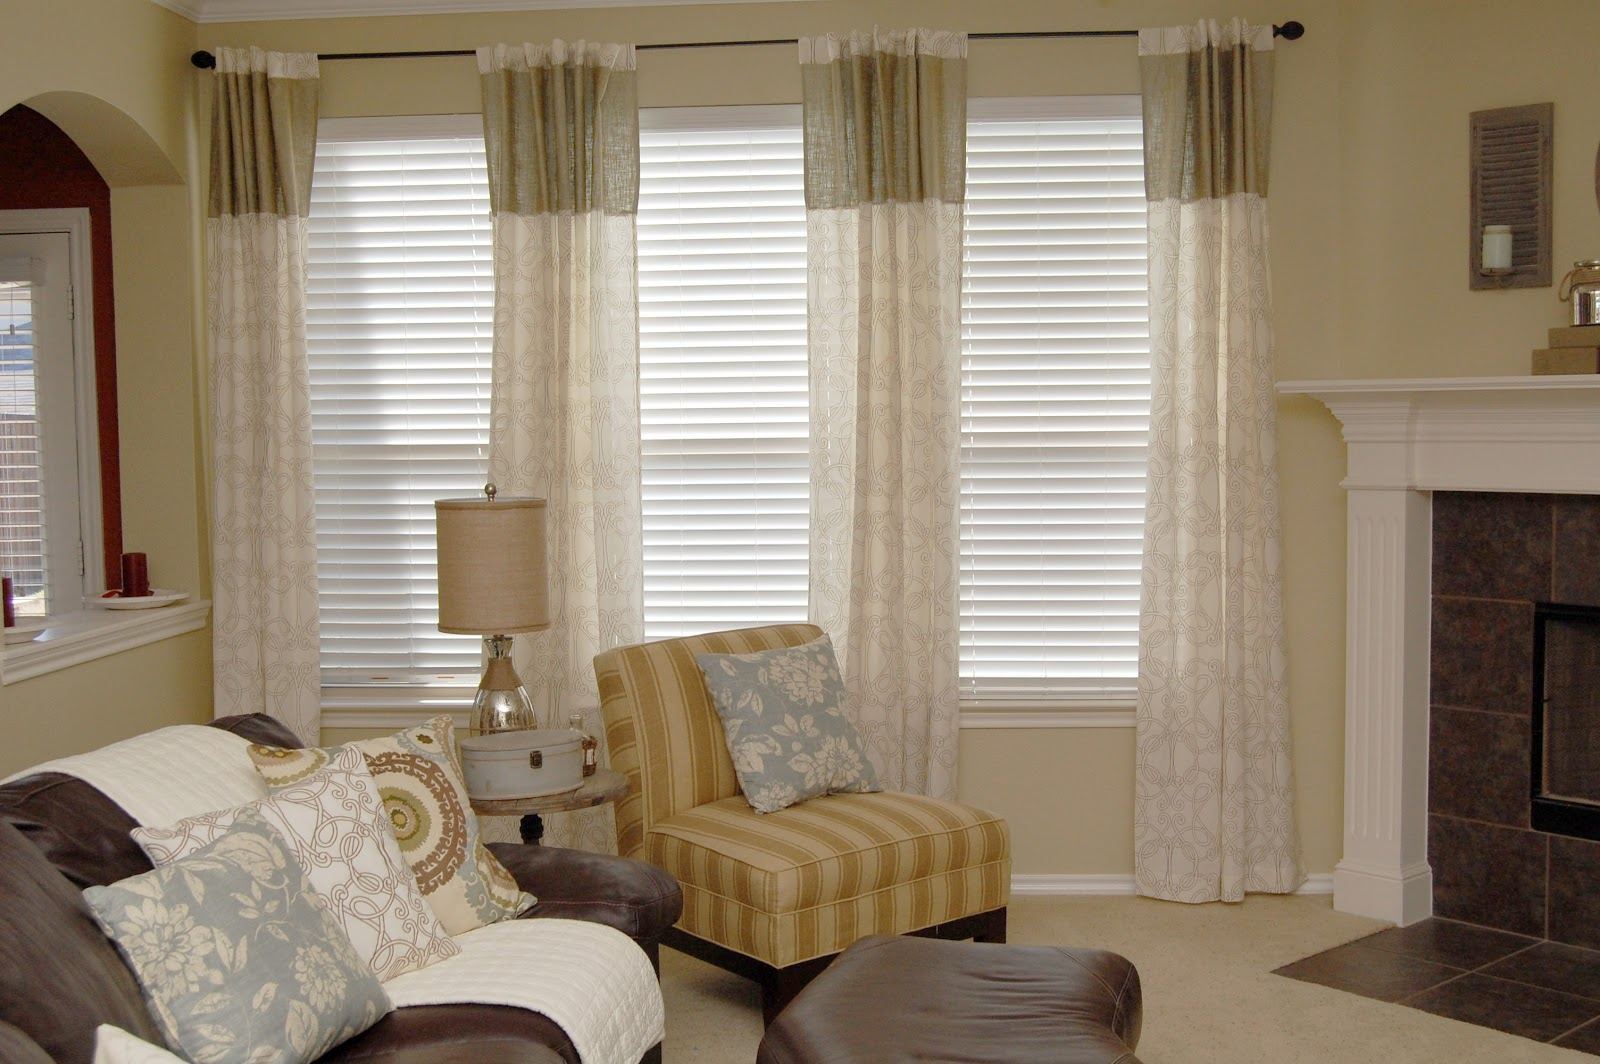 Shabby chic living room curtains - I Used Premade Patterned Curtains And Added The Burlap Panel For Length